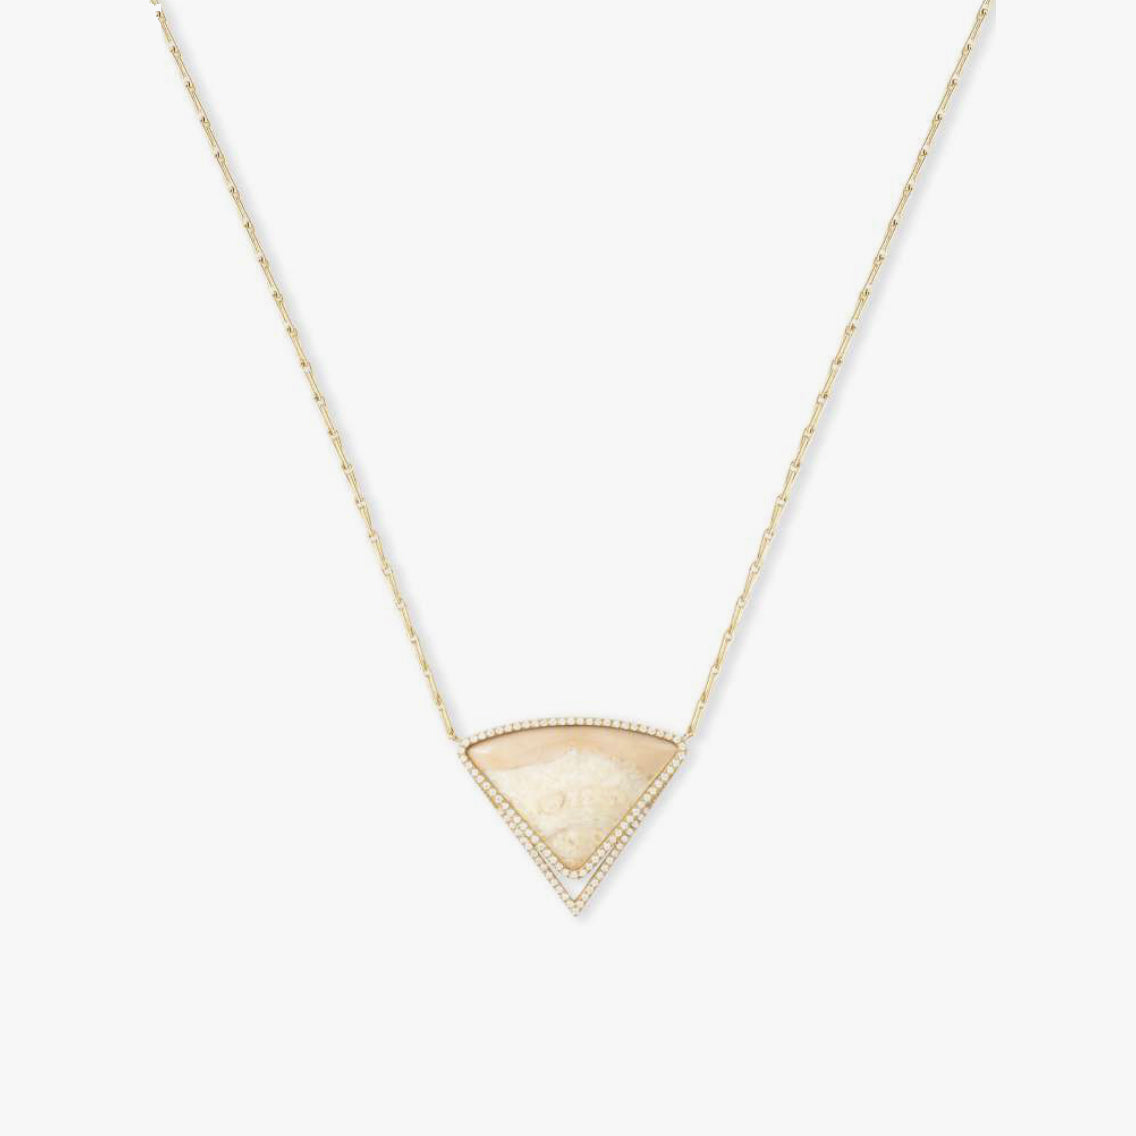 Taupe Fossilized Walrus Ivory Necklace